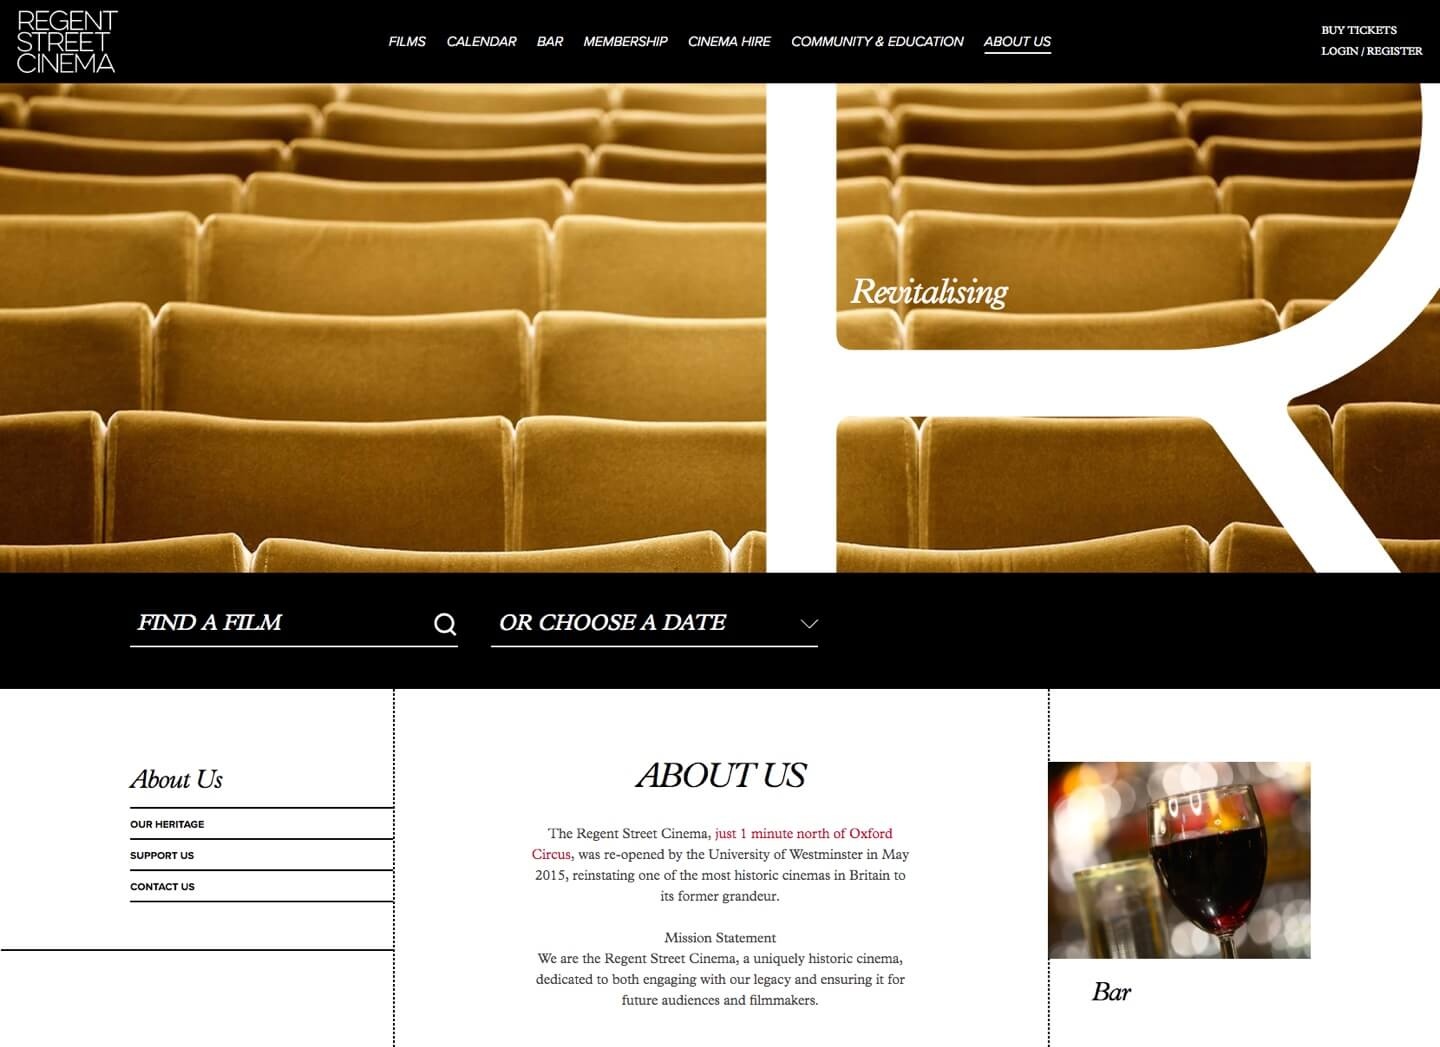 Yellow seats at regent street cinema in a header